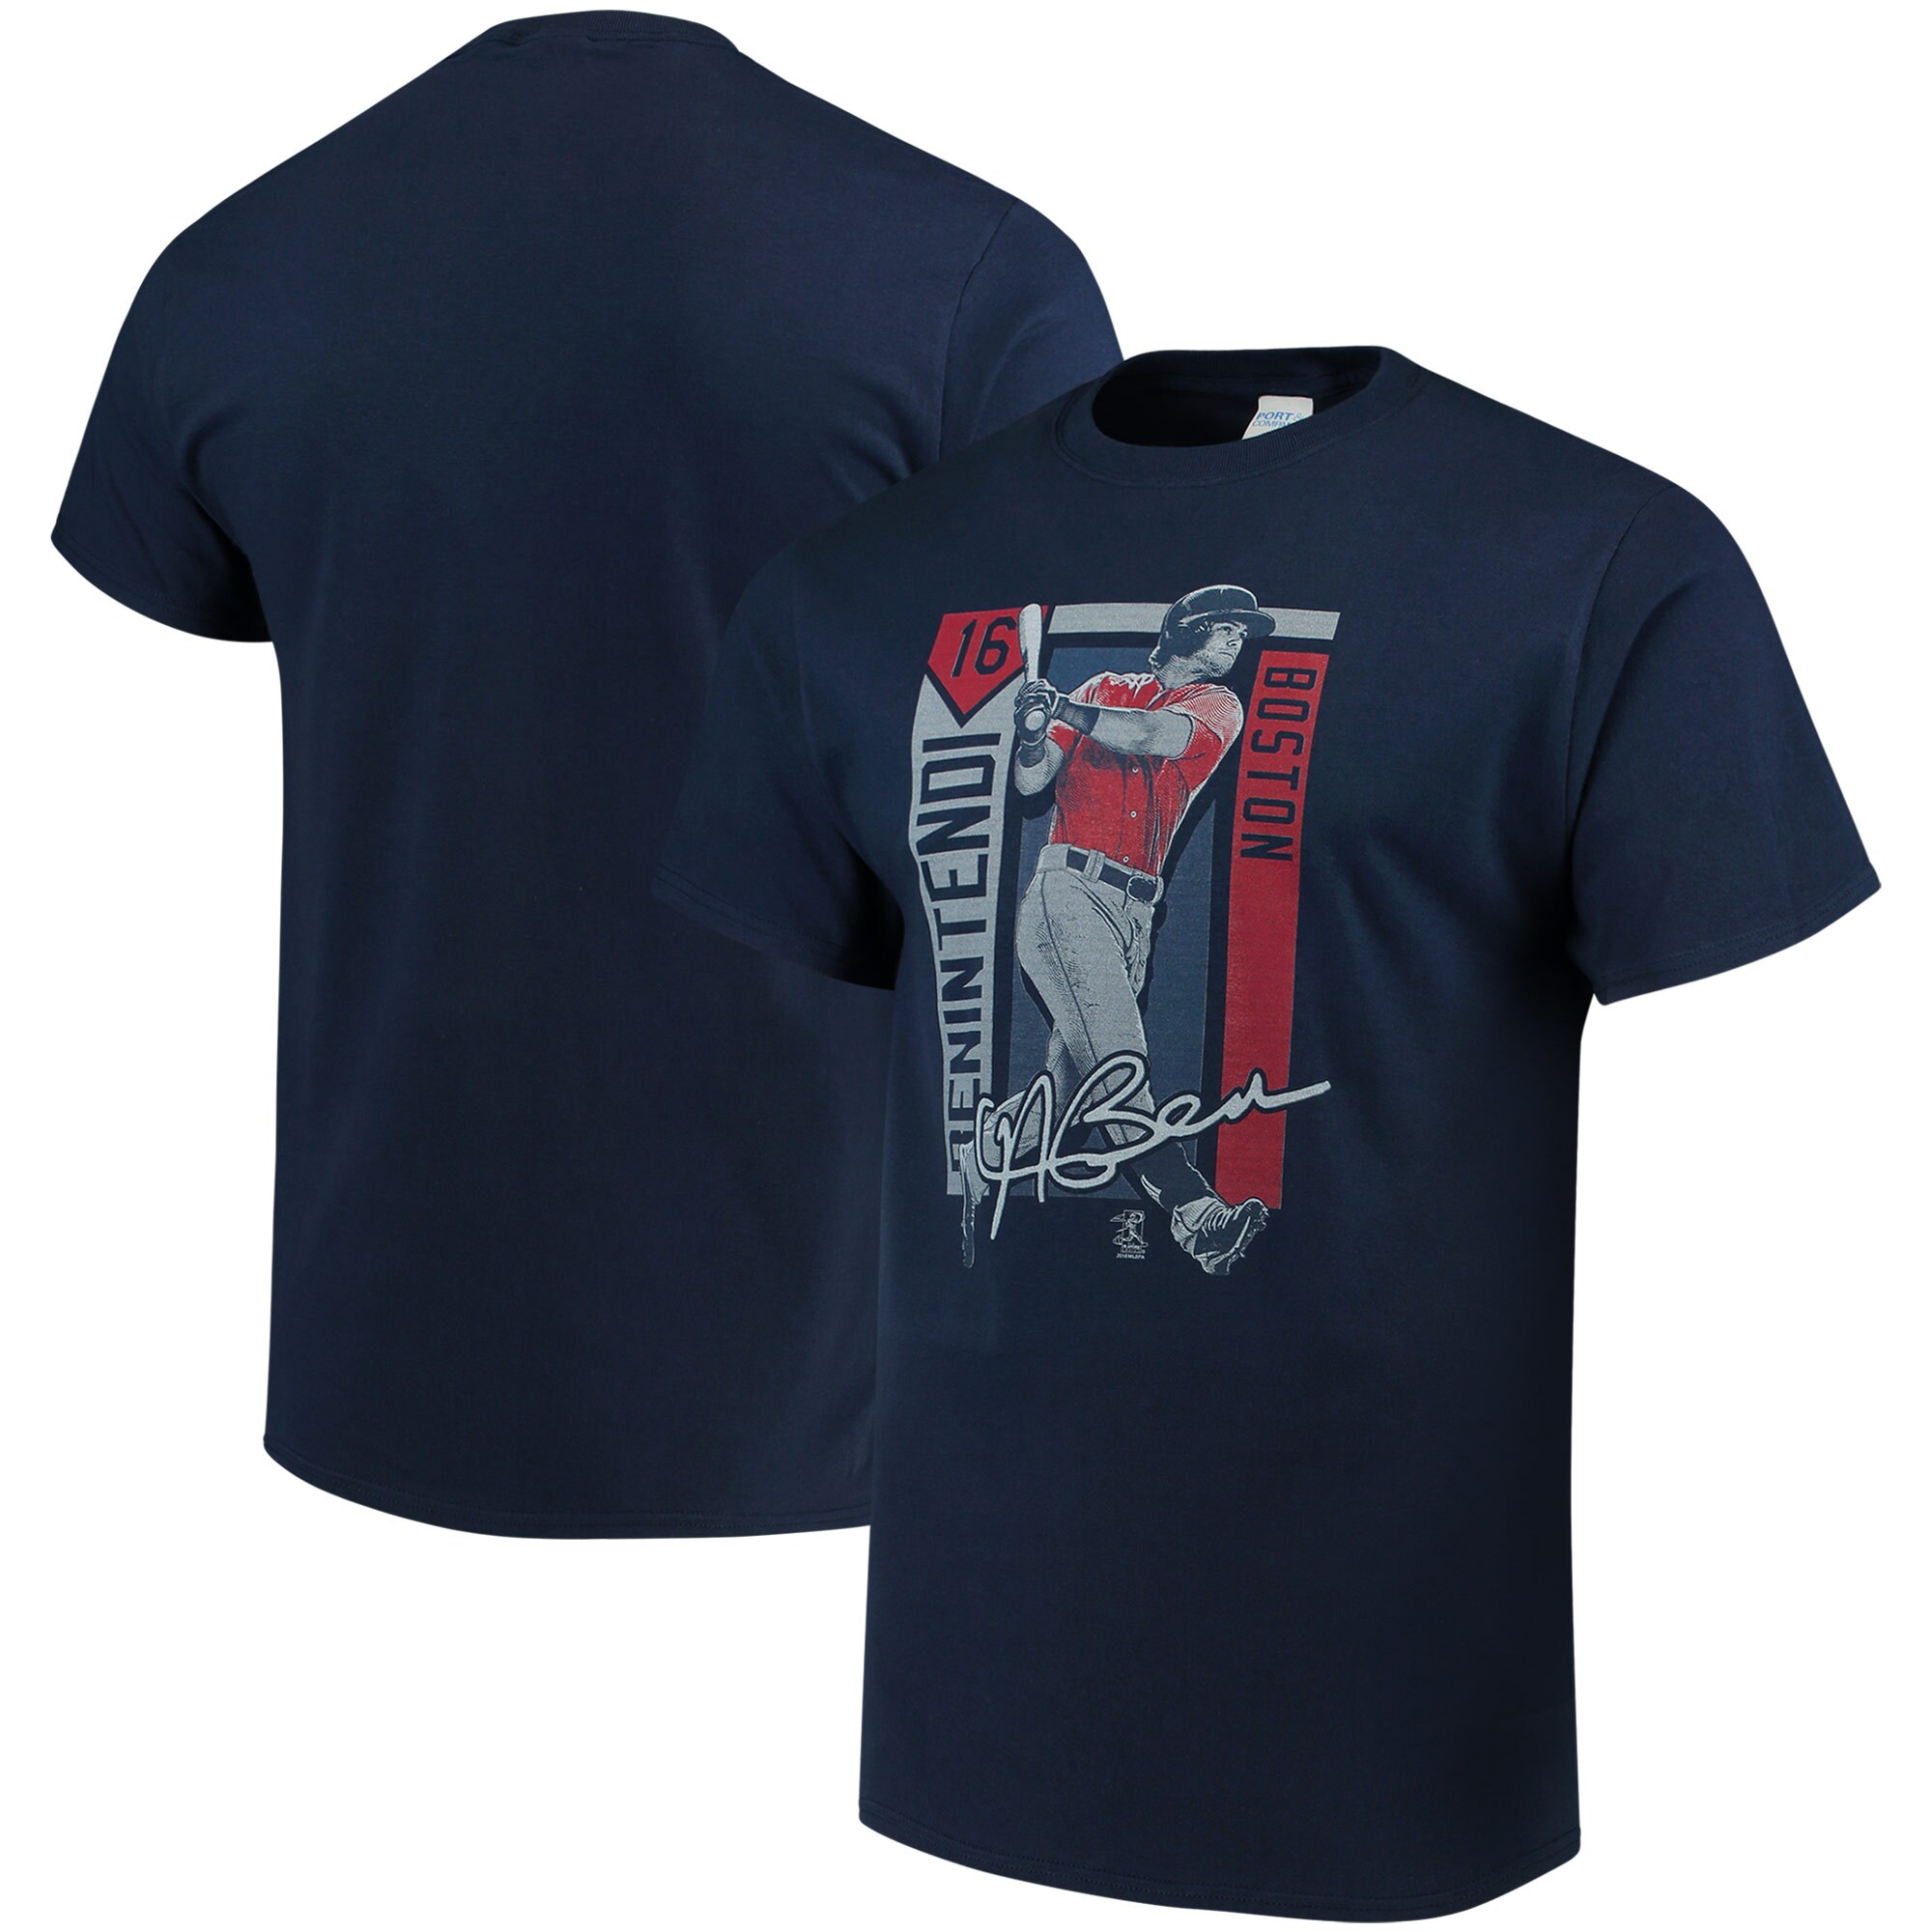 Andrew Benintendi Boston Red Sox Color Block Series Player Graphic T-Shirt - Navy